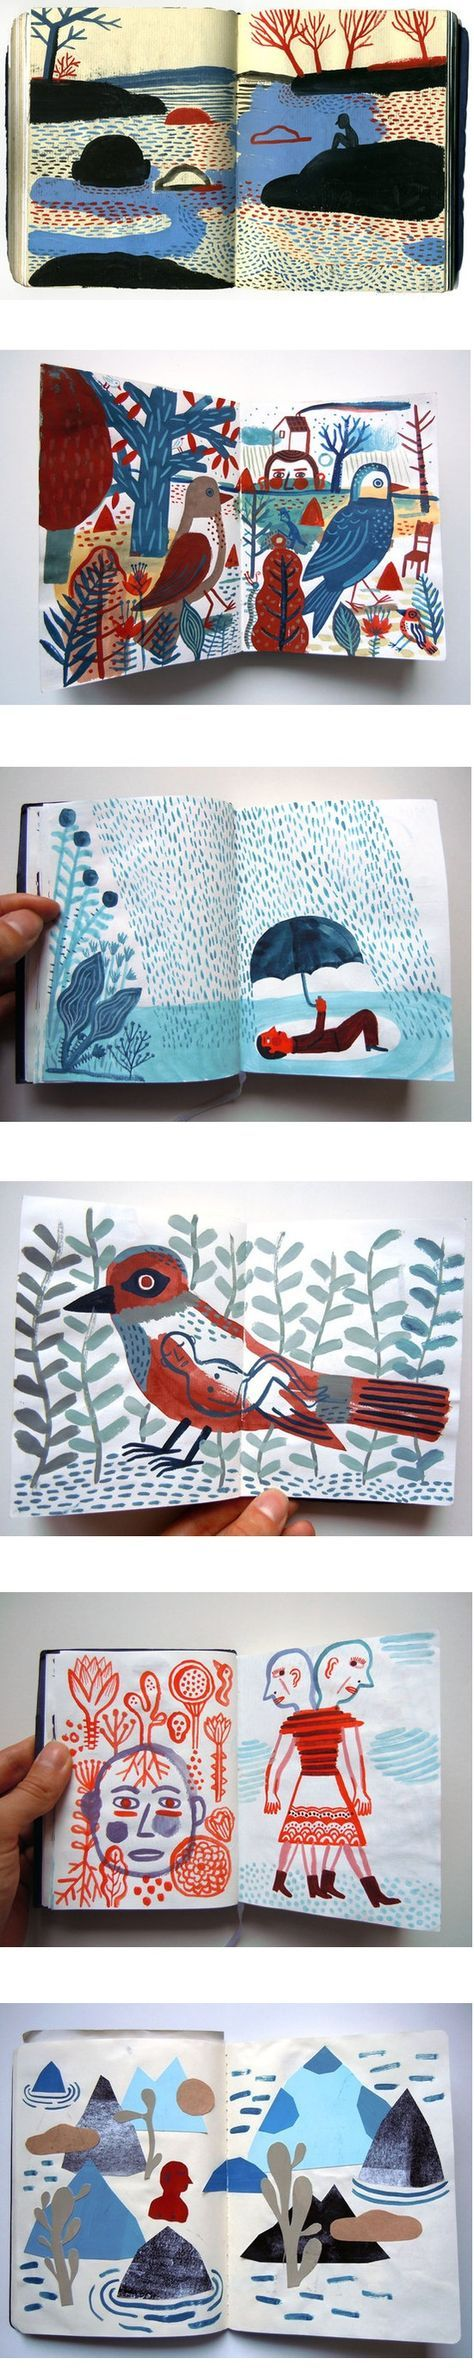 Laurent Moreau: different subjects but similar marks and a limited colour palette make this a really cohesive sketchbook